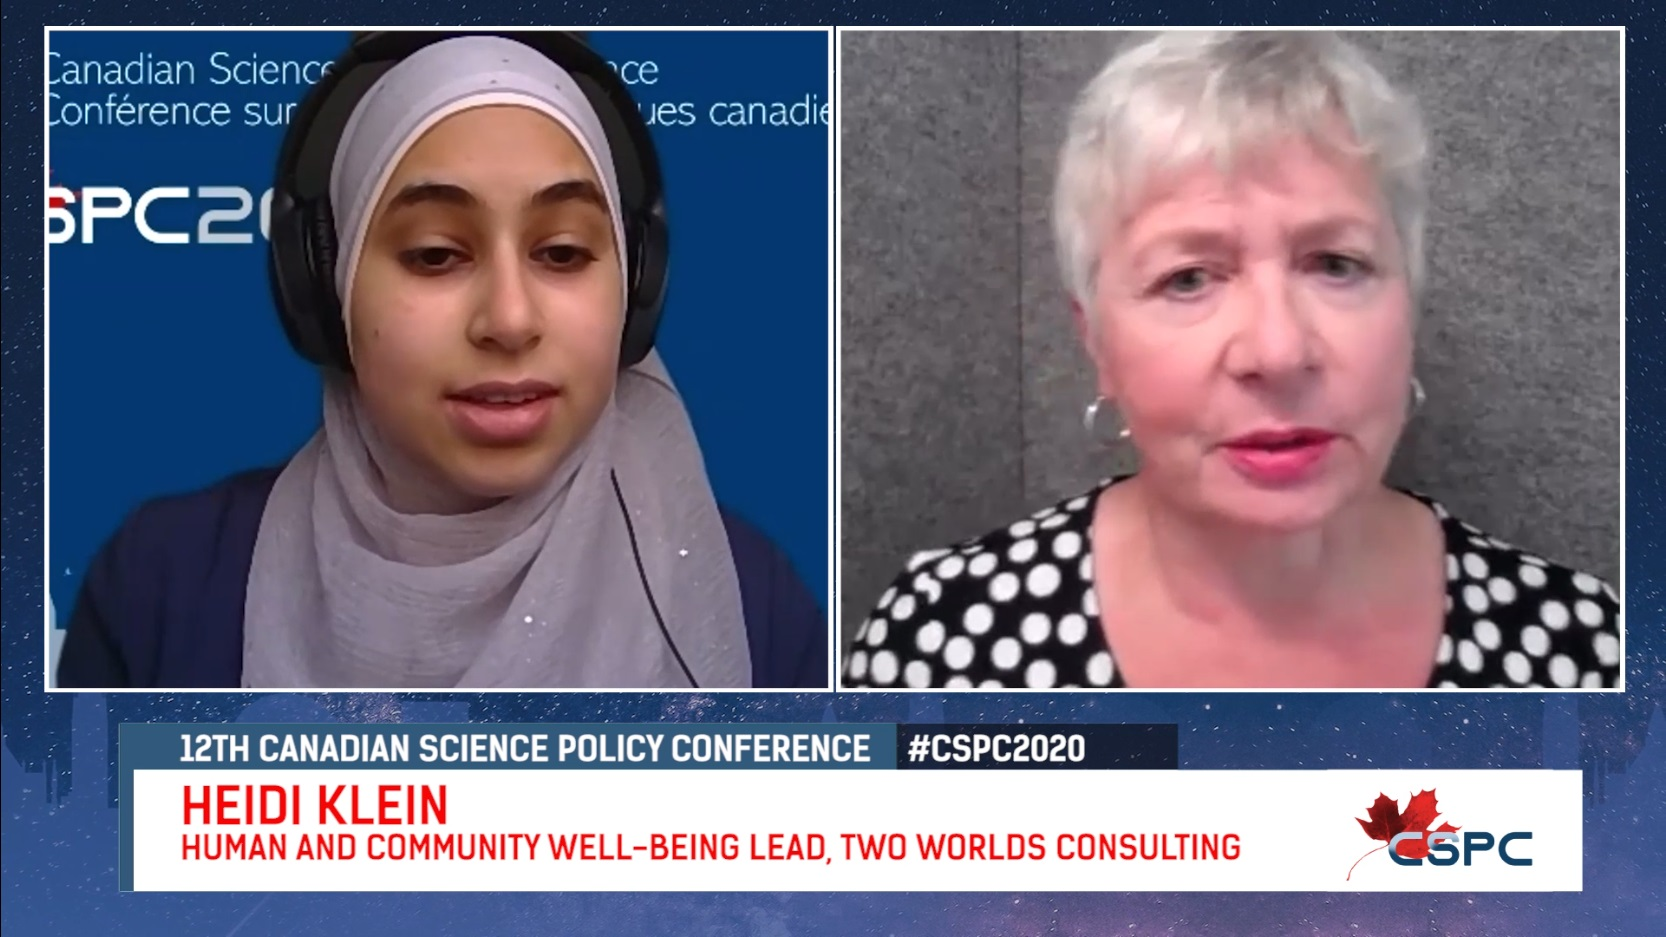 youtube screenshot of an interview between a hijabi woman and an older white woman